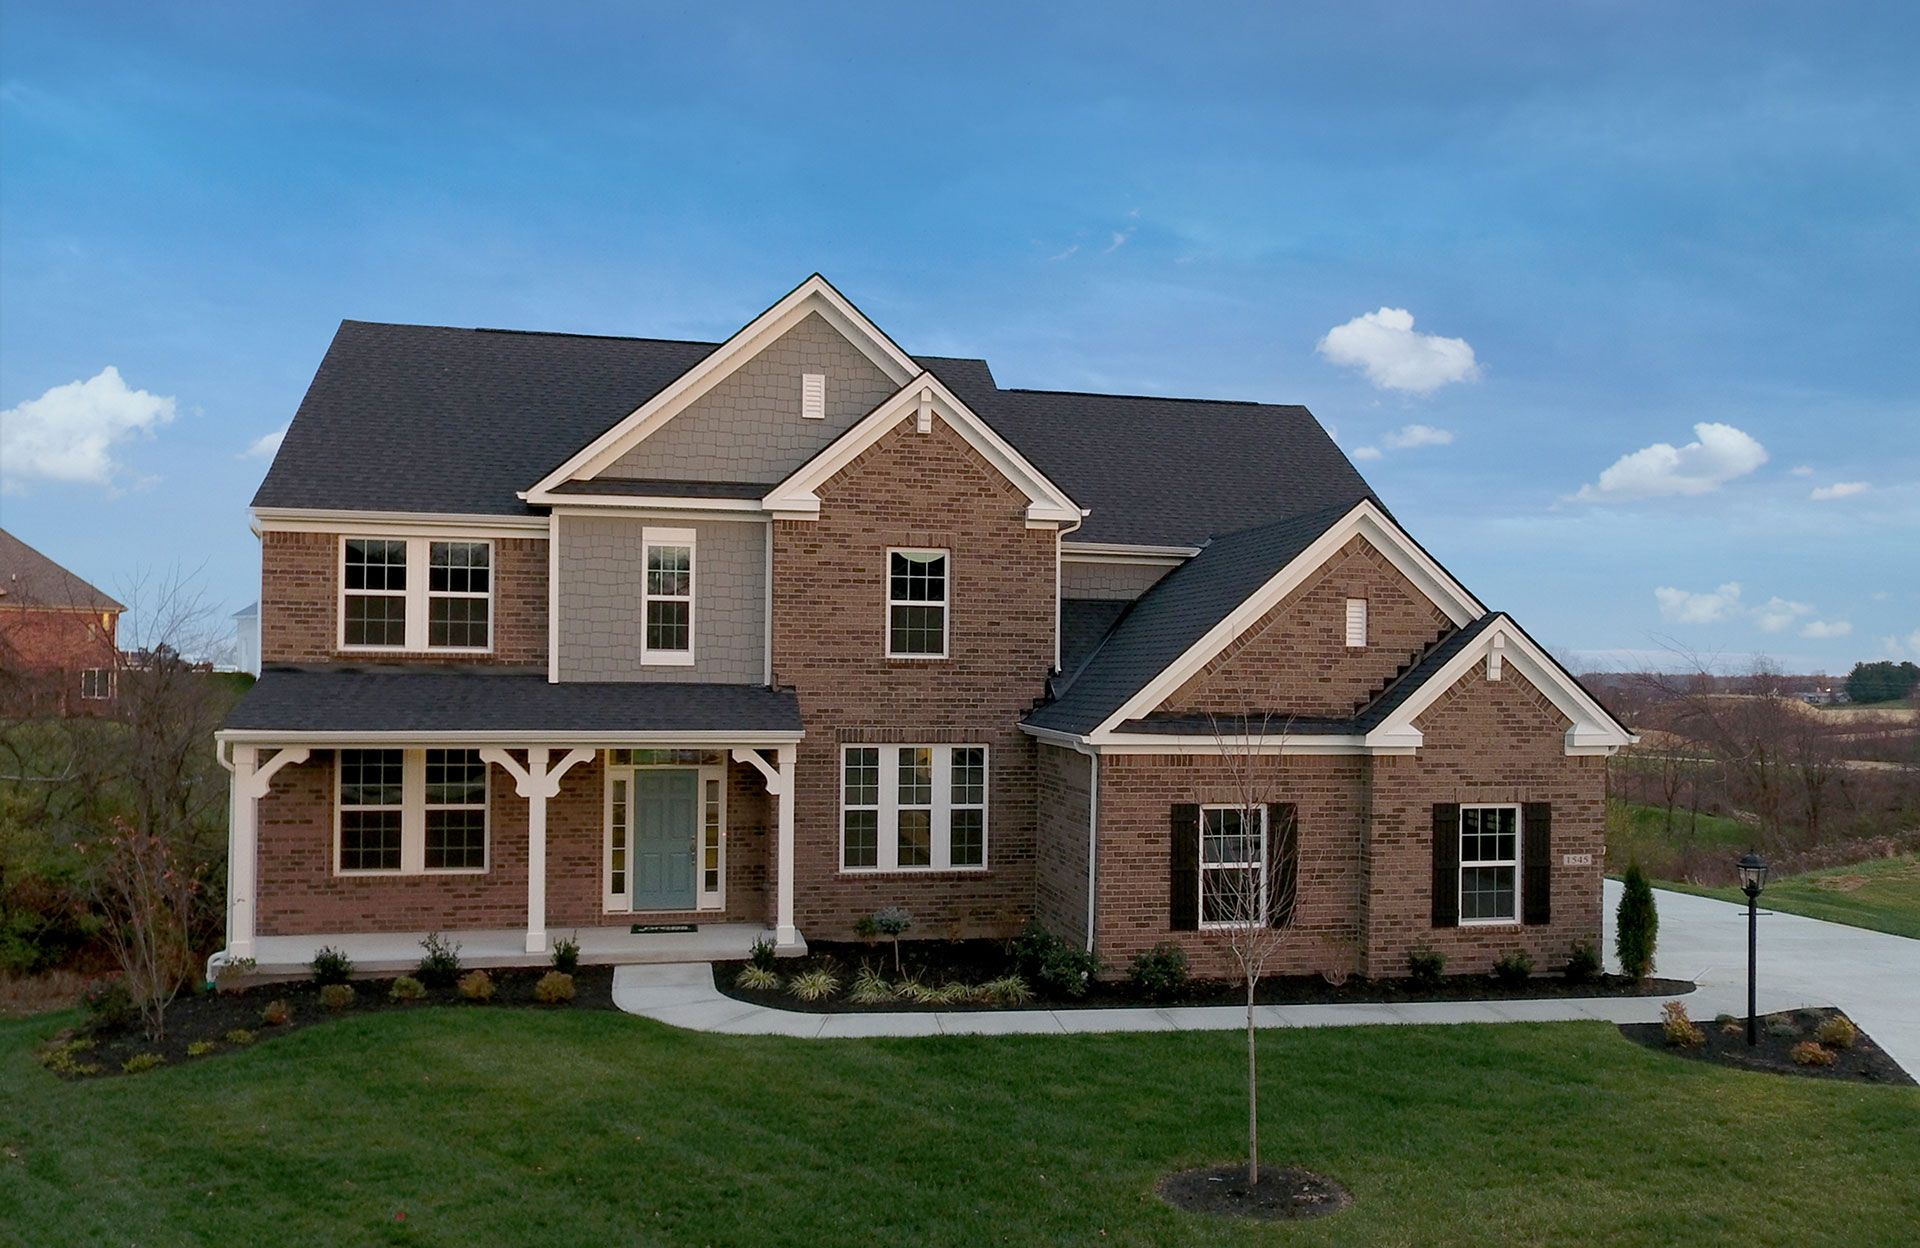 Single Family for Sale at Ash Lawn 1545 Smarty Jones Court Union, Kentucky 41091 United States